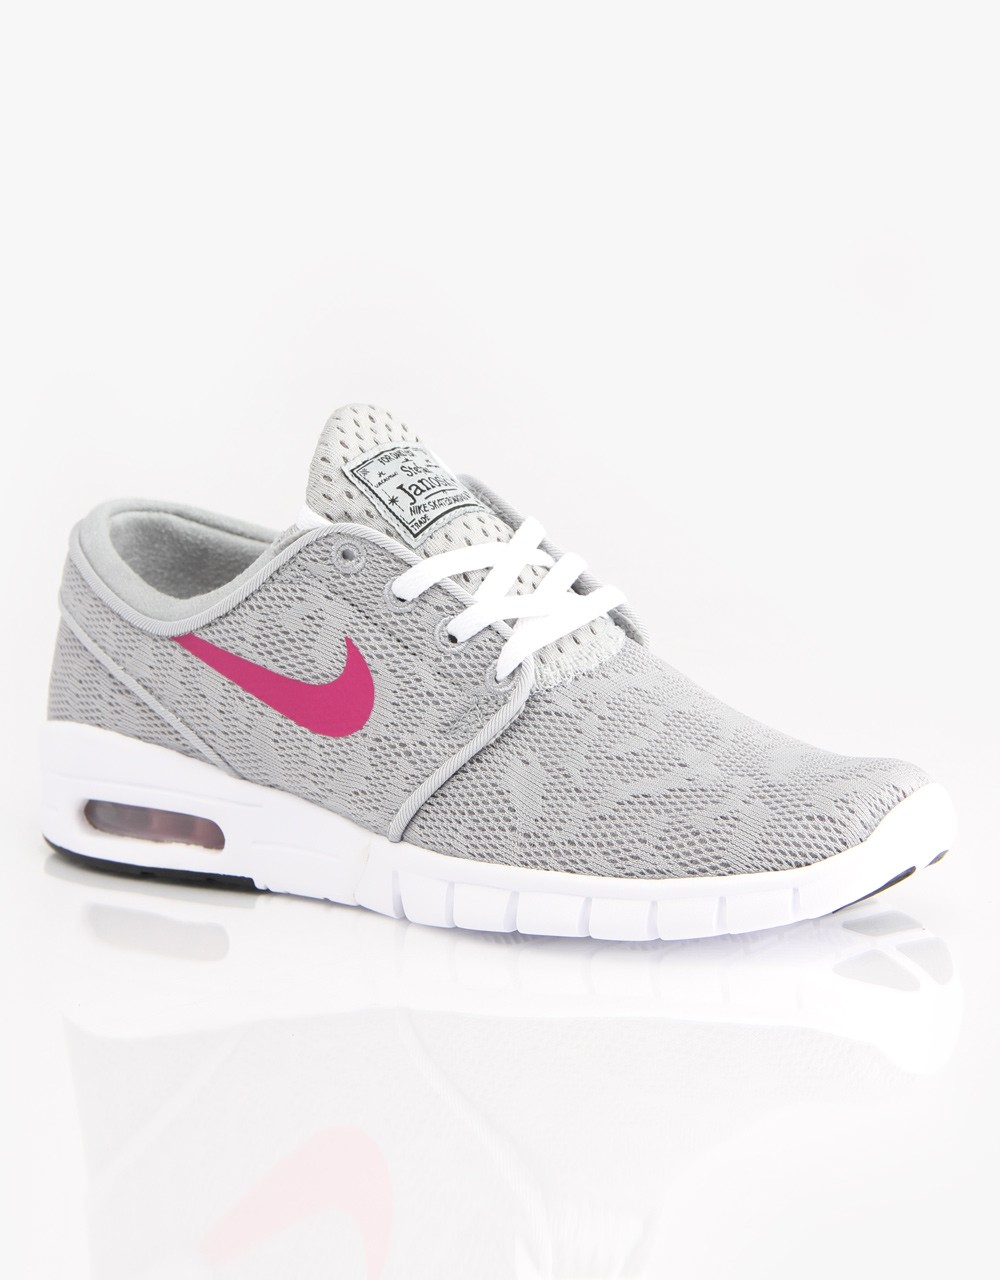 Nike SB Stefan Janoski Max EM Base Grey Bright Magenta White Shoe